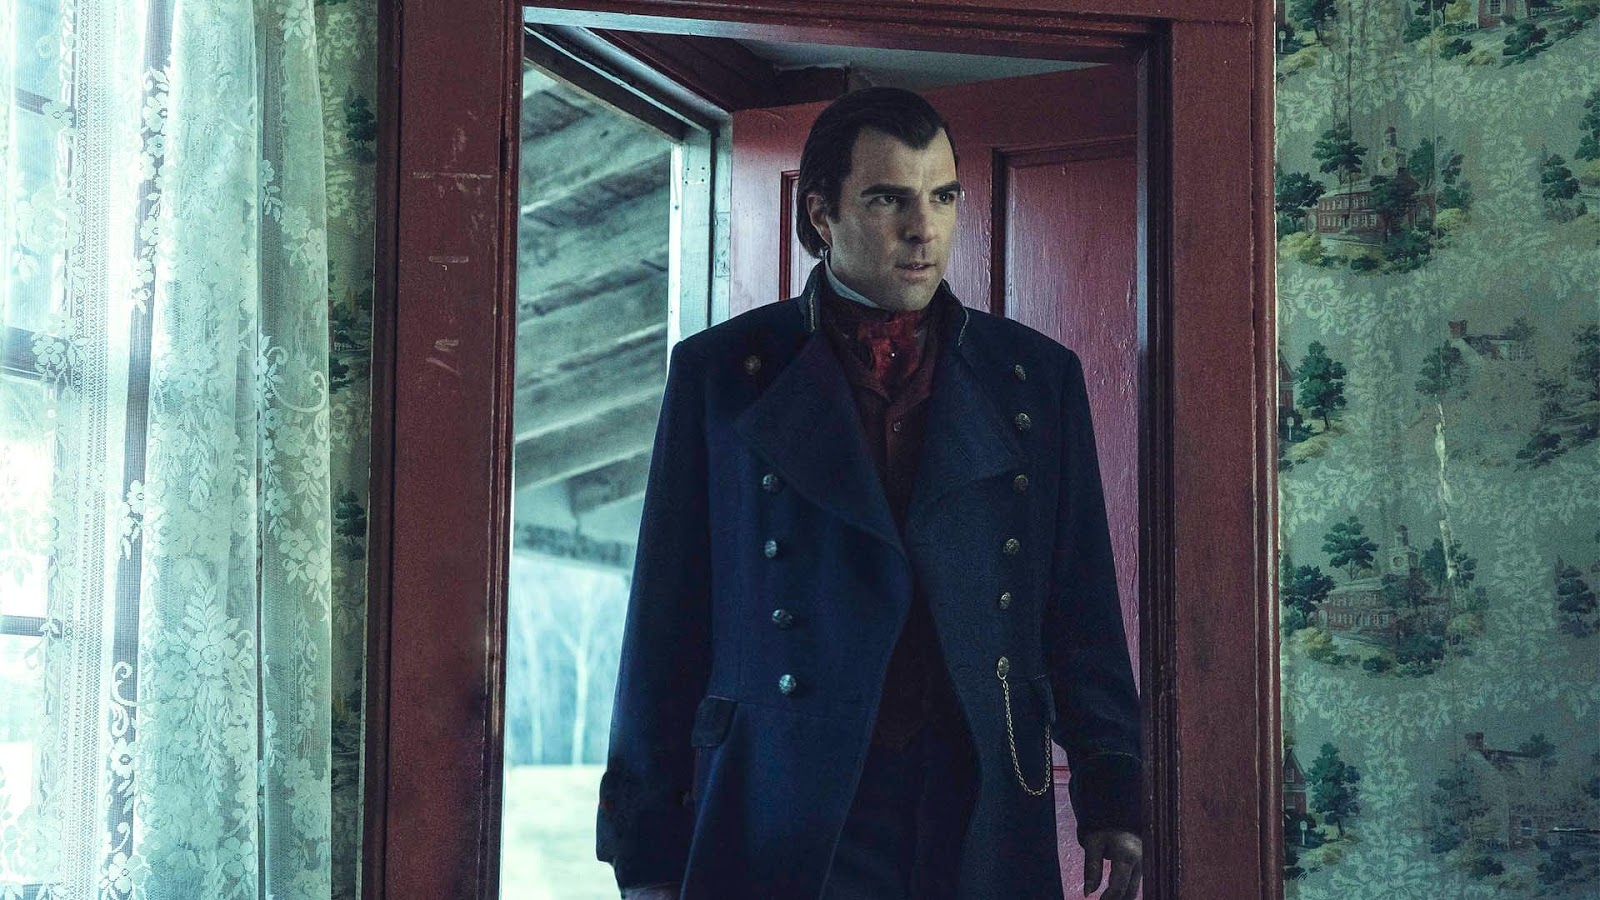 AMC NOS4A2 |Sleigh House review | Zachary Quinto is Charlie Manx